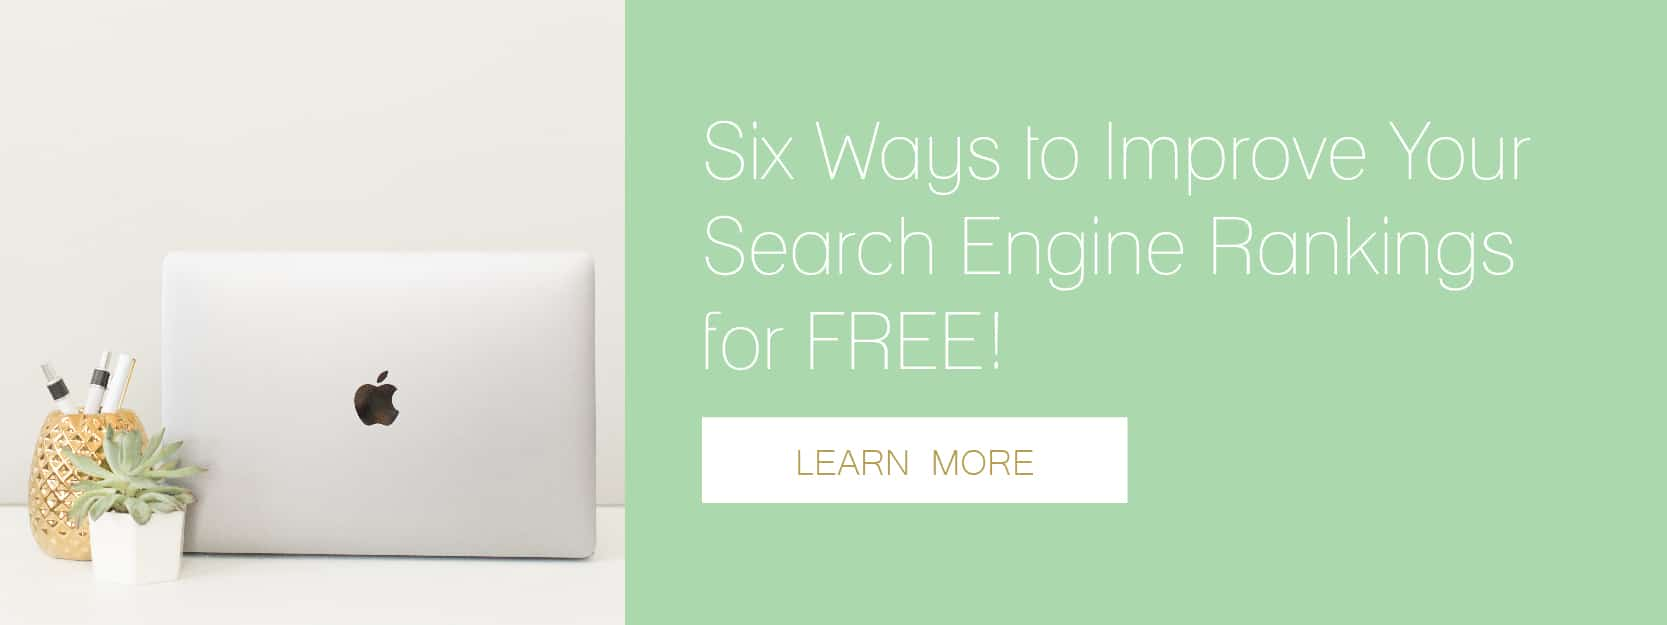 Discover six ways you can improve your search engine rankings for free